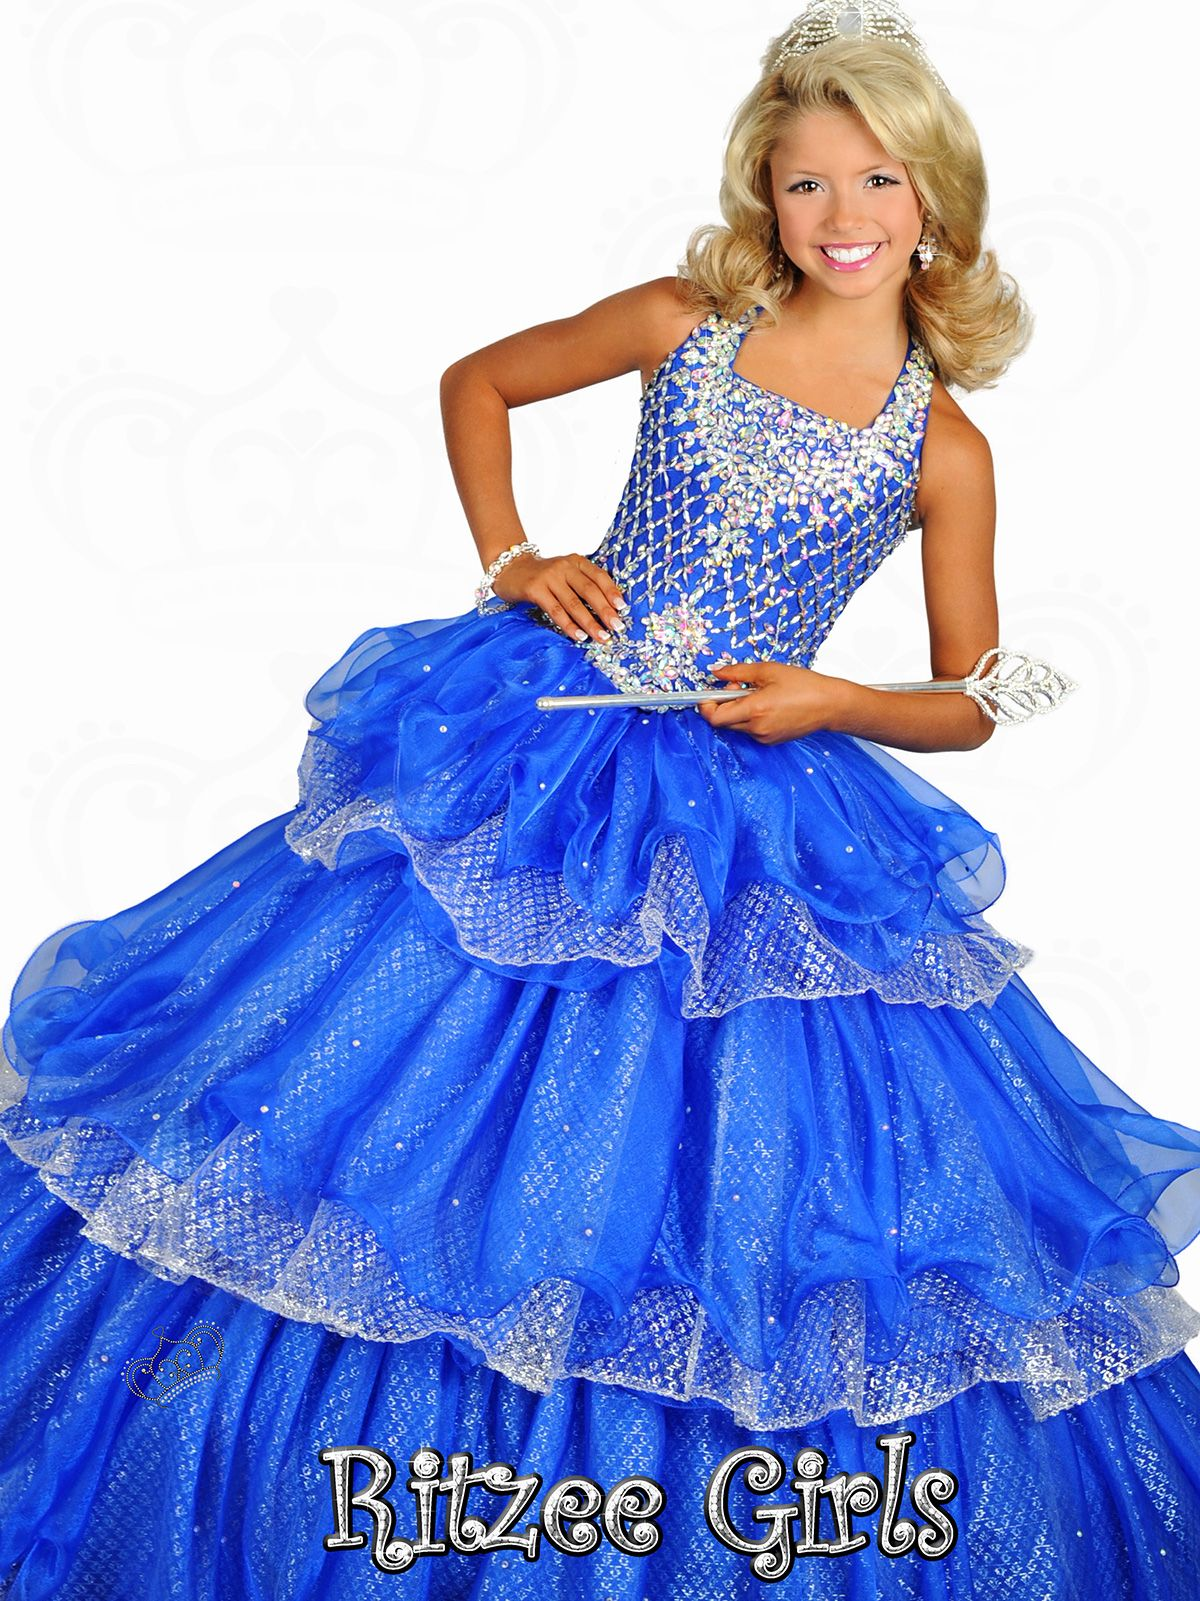 Halter Tiered Skirt Ritzee Girls Pageant Ball Gown 6676 ...